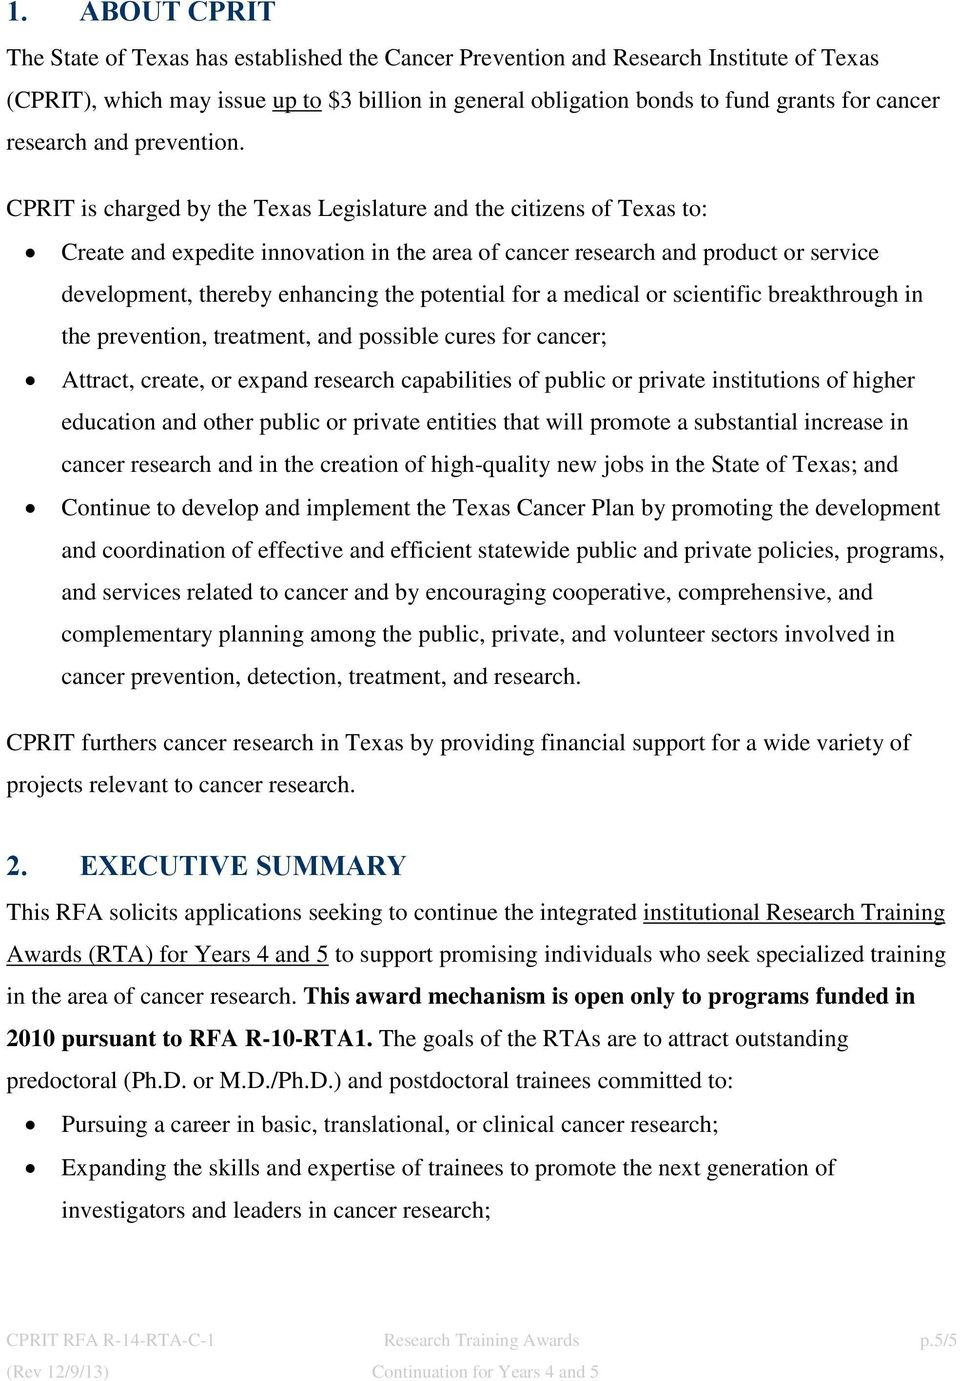 CPRIT is charged by the Texas Legislature and the citizens of Texas to: Create and expedite innovation in the area of cancer research and product or service development, thereby enhancing the